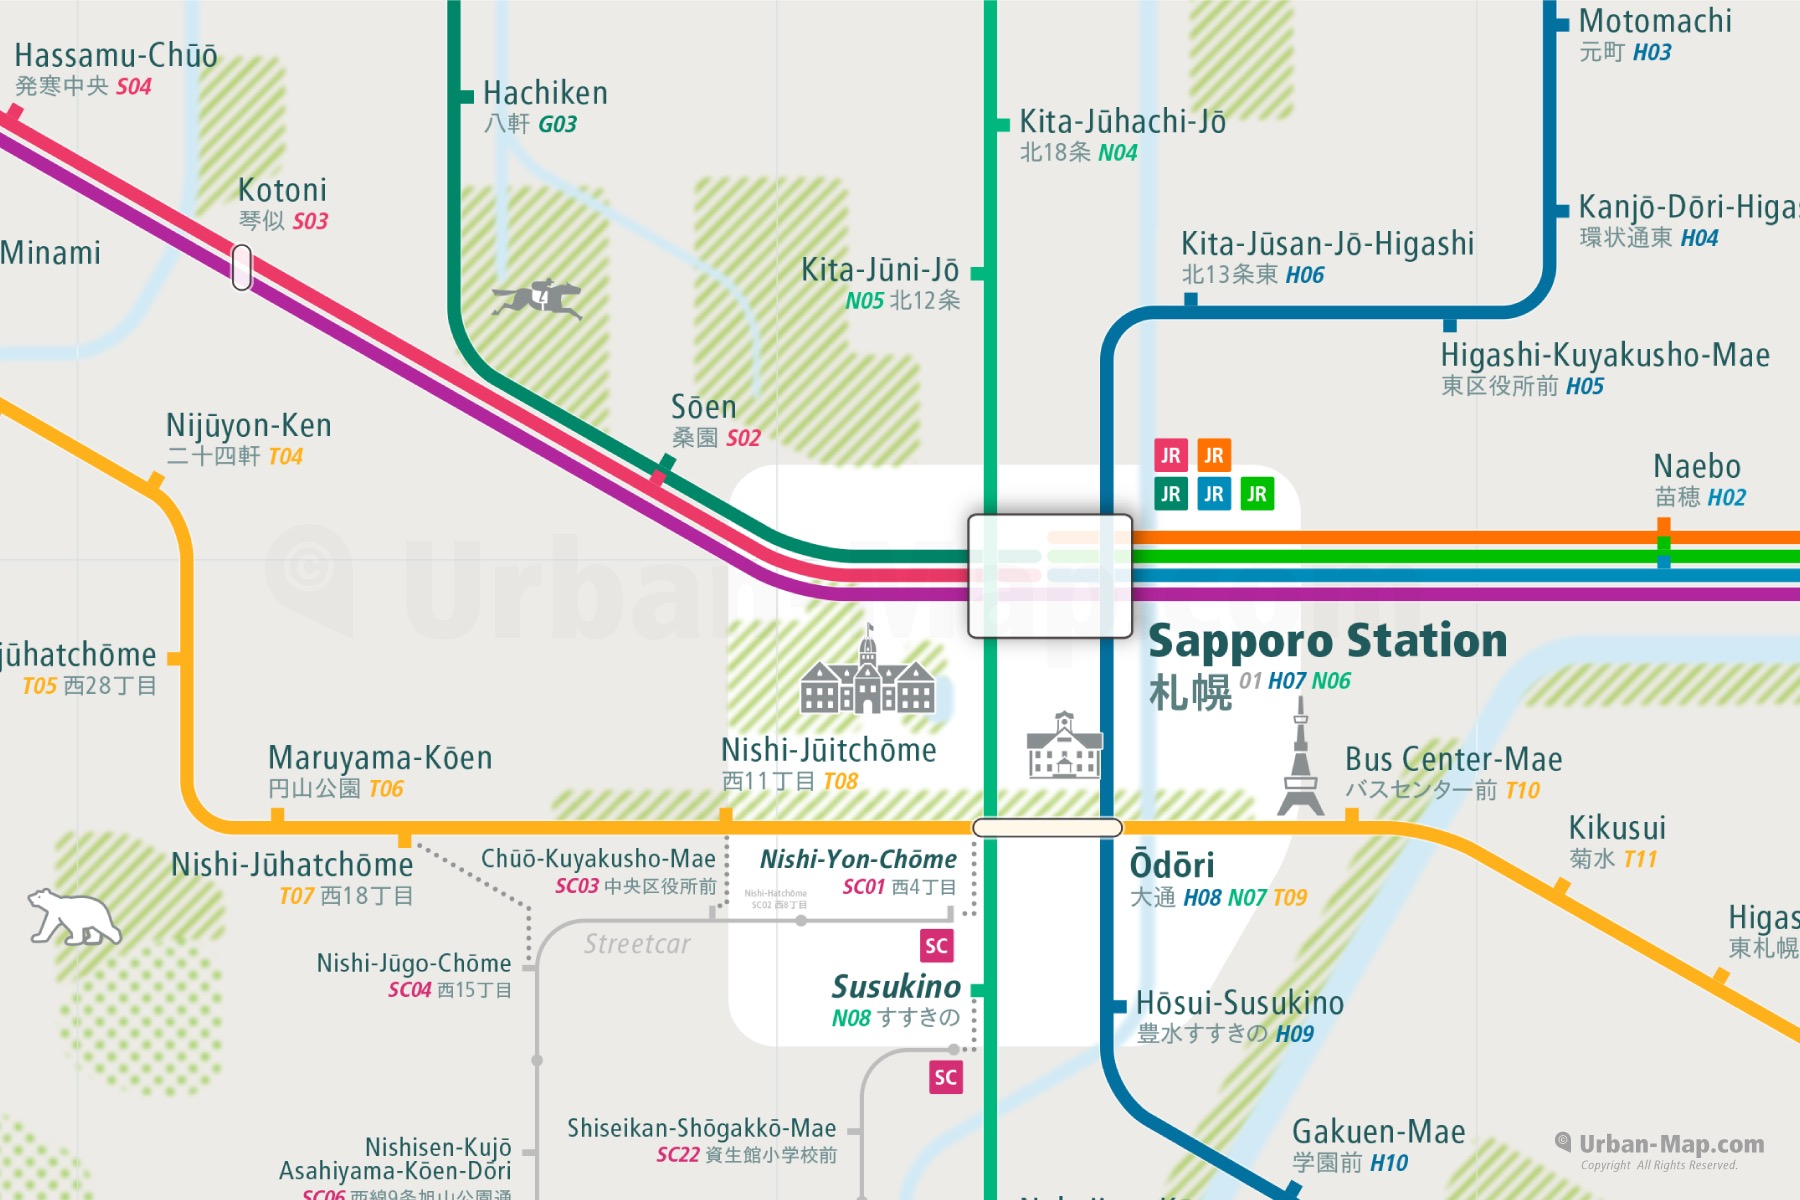 Sapporo City Rail Map shows the train and public transportation routes of - Close-Up